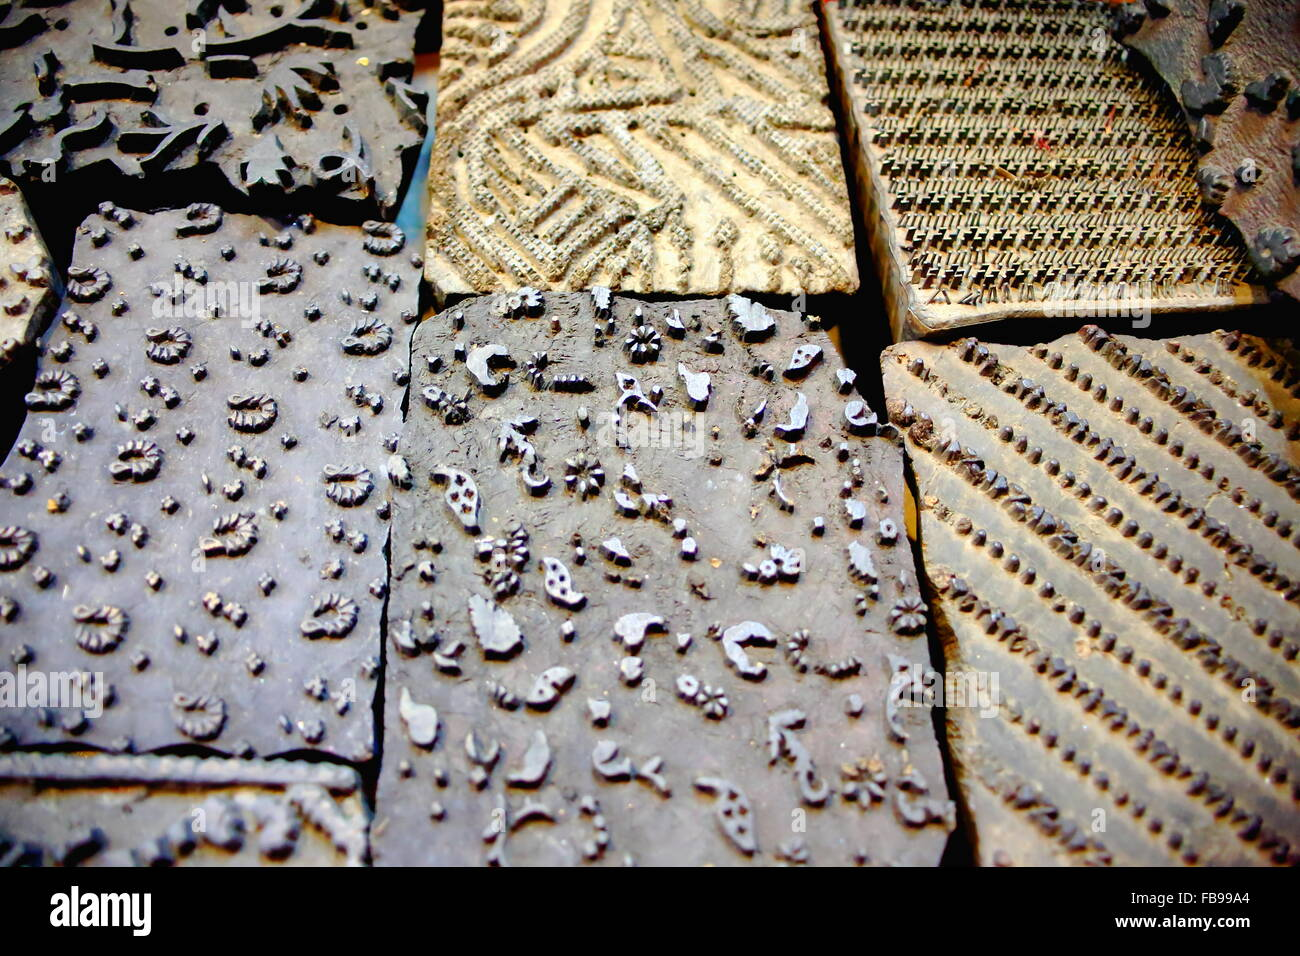 Traditional nepalese types for woodblock printing in the windowshop of a souvenir shop in the Thamel area of Kathmandu - Stock Image